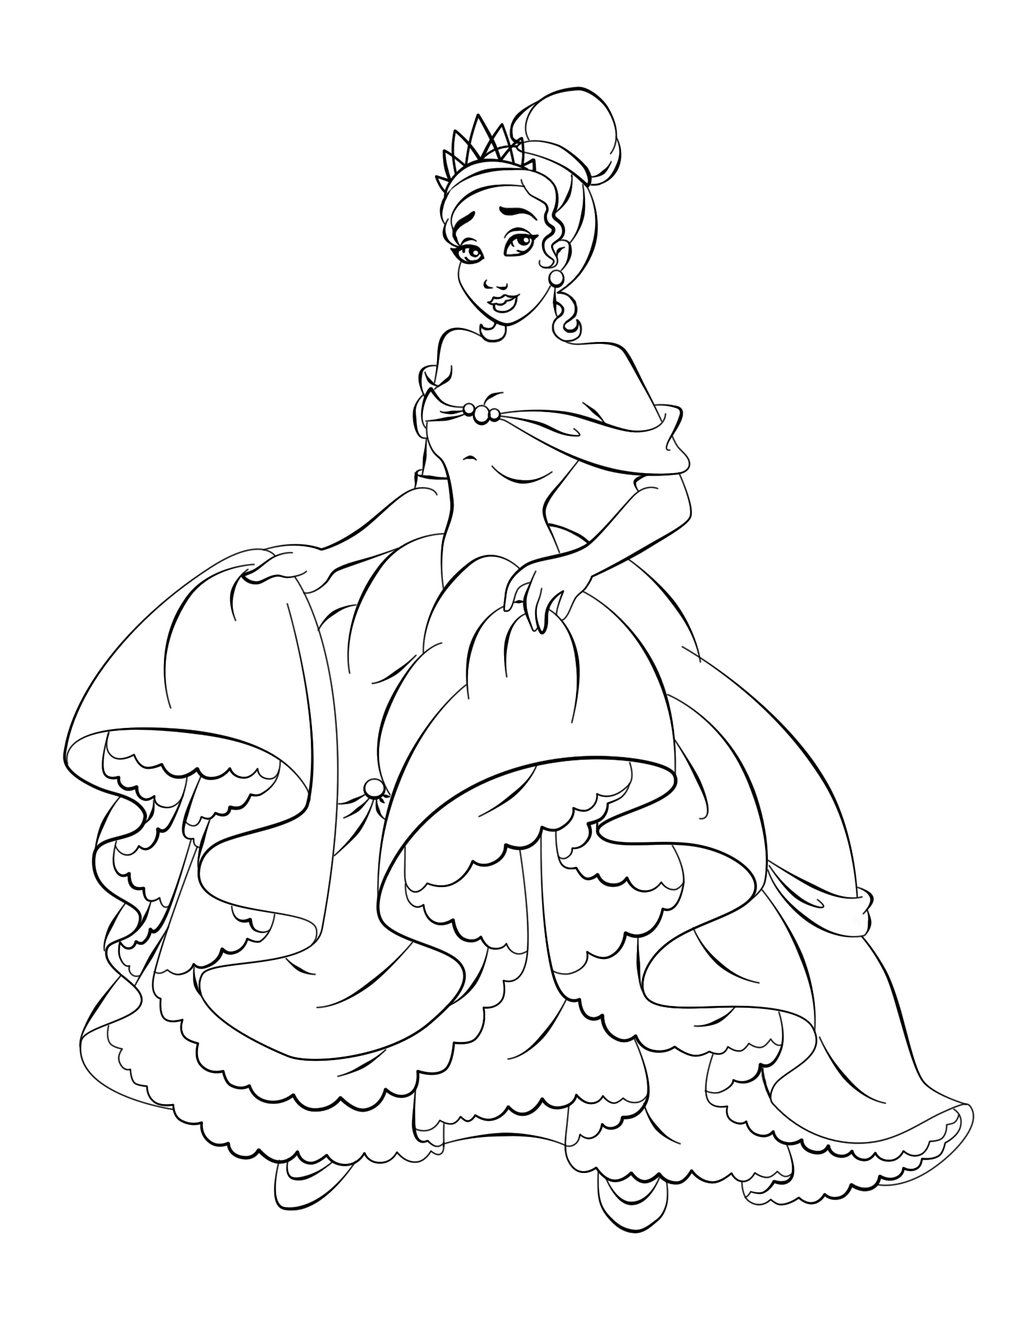 Free Printable Princess Tiana Coloring Pages For Kids Princess Dress Coloring Pages Free Coloring Sheets